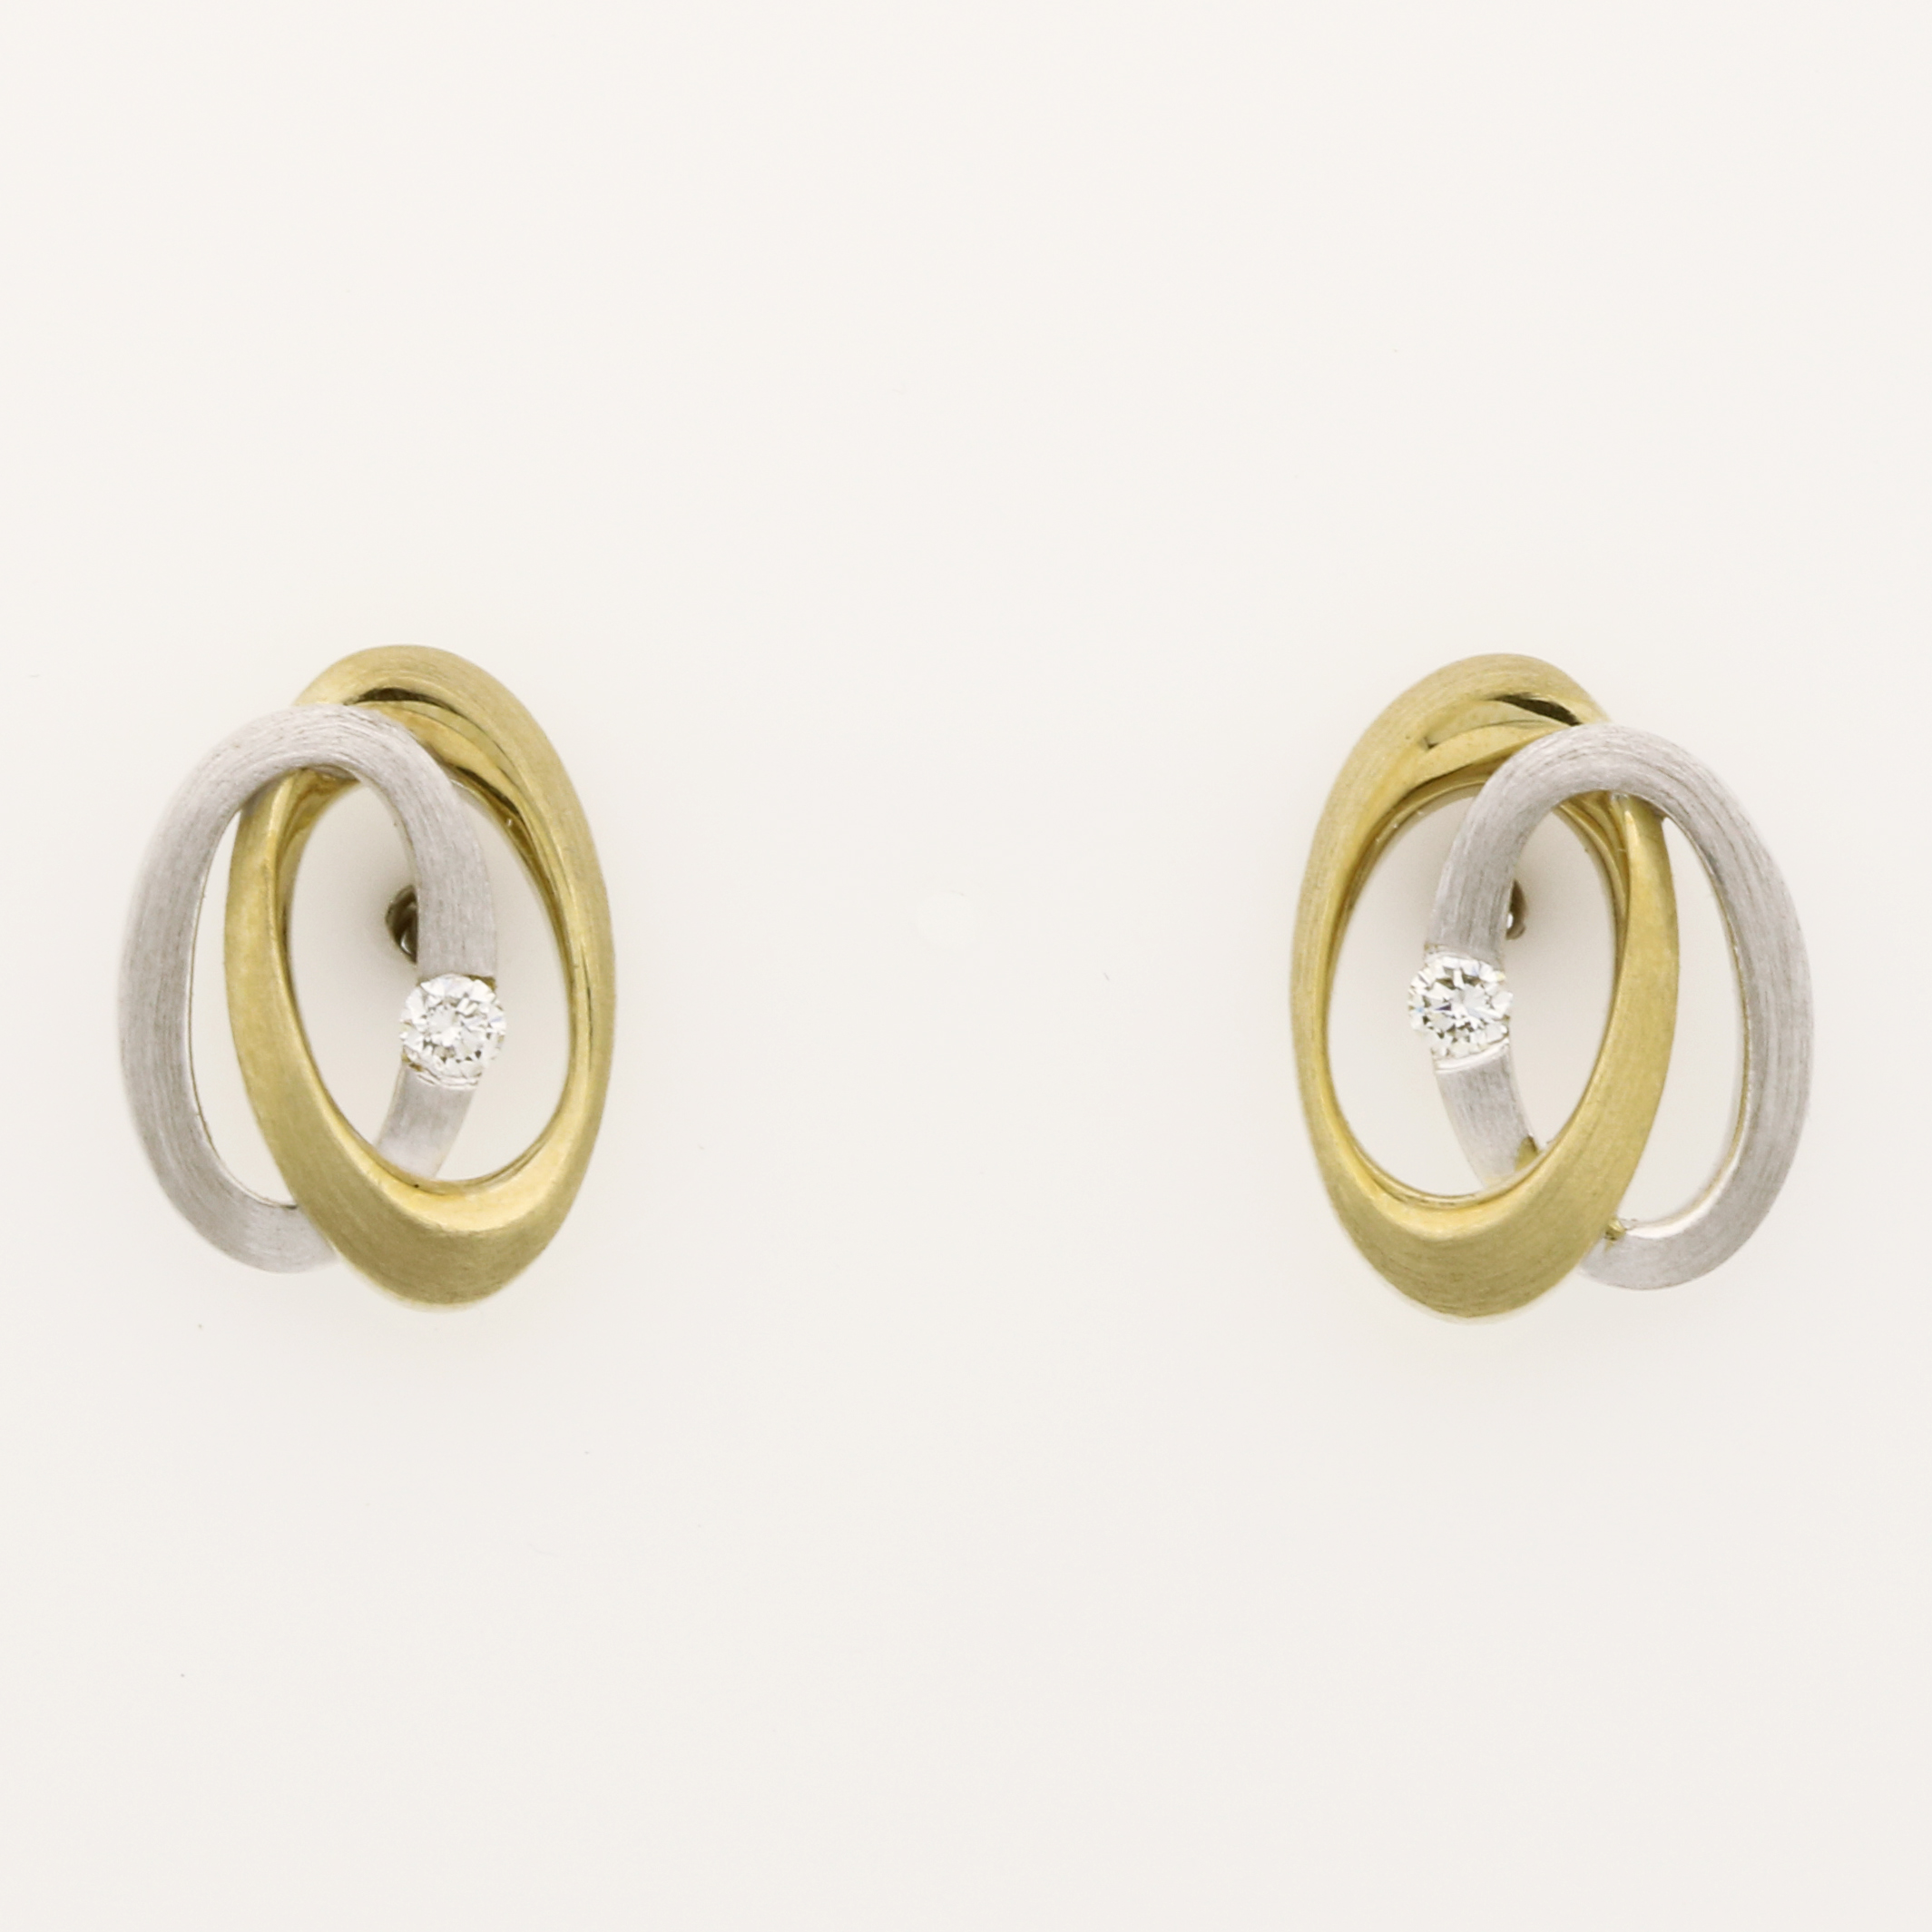 E0224 9ct white and yellow gold swirl diamond earrings $550